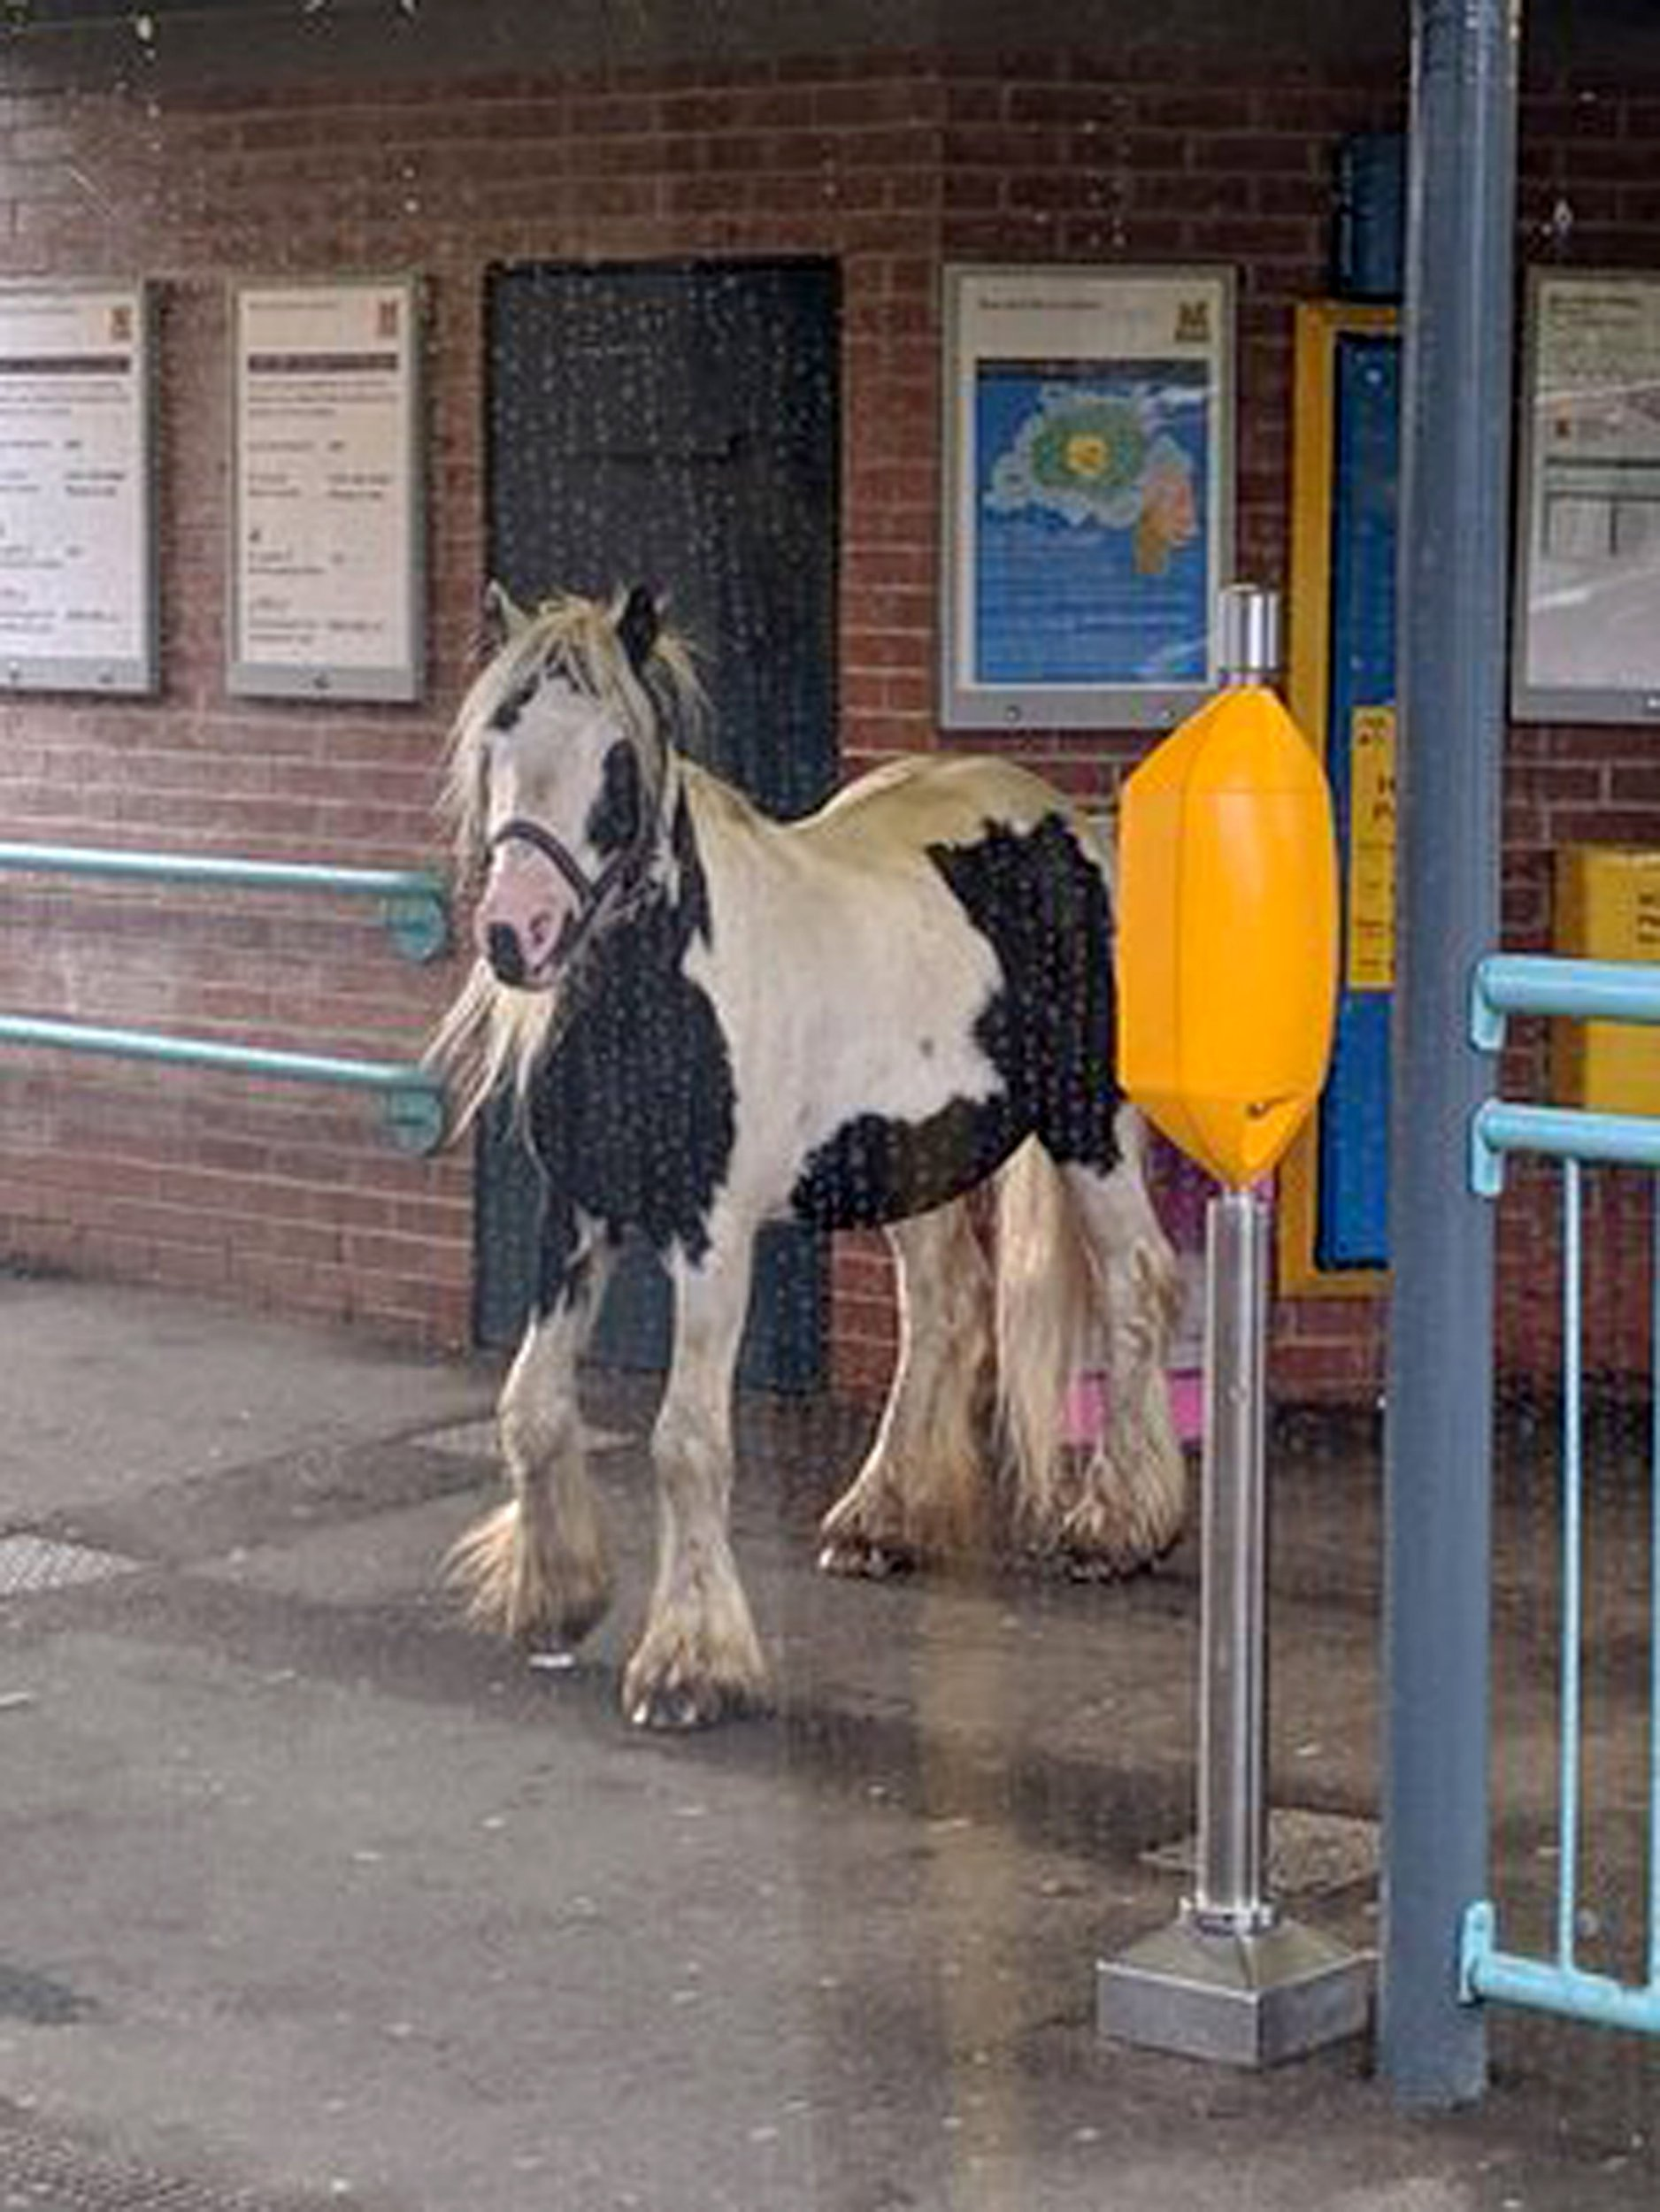 Handout print taken with accede from a Twitter page of Will Mapplebeck of a equine on a height during Brockley Whins Metro hire in South Shields. PRESS ASSOCIATION Photo. Picture date: Monday Aug 12, 2019. A Nexus orator pronounced ?Brockley Whins is an unstaffed hire so staff were sent out to understanding with a incident. Before they got there a member of a open led a equine divided and put it safely behind into a circuitously margin that it had transient from. See PA story RAIL Horse. Photo credit should read: Will Mapplebeck/Twitter/PA Wire NOTE TO EDITORS: This welfare print competence usually be used in for editorial stating functions for a attendant painting of events, things or a people in a design or contribution mentioned in a caption. Reuse of a design competence need serve accede from a copyright holder.